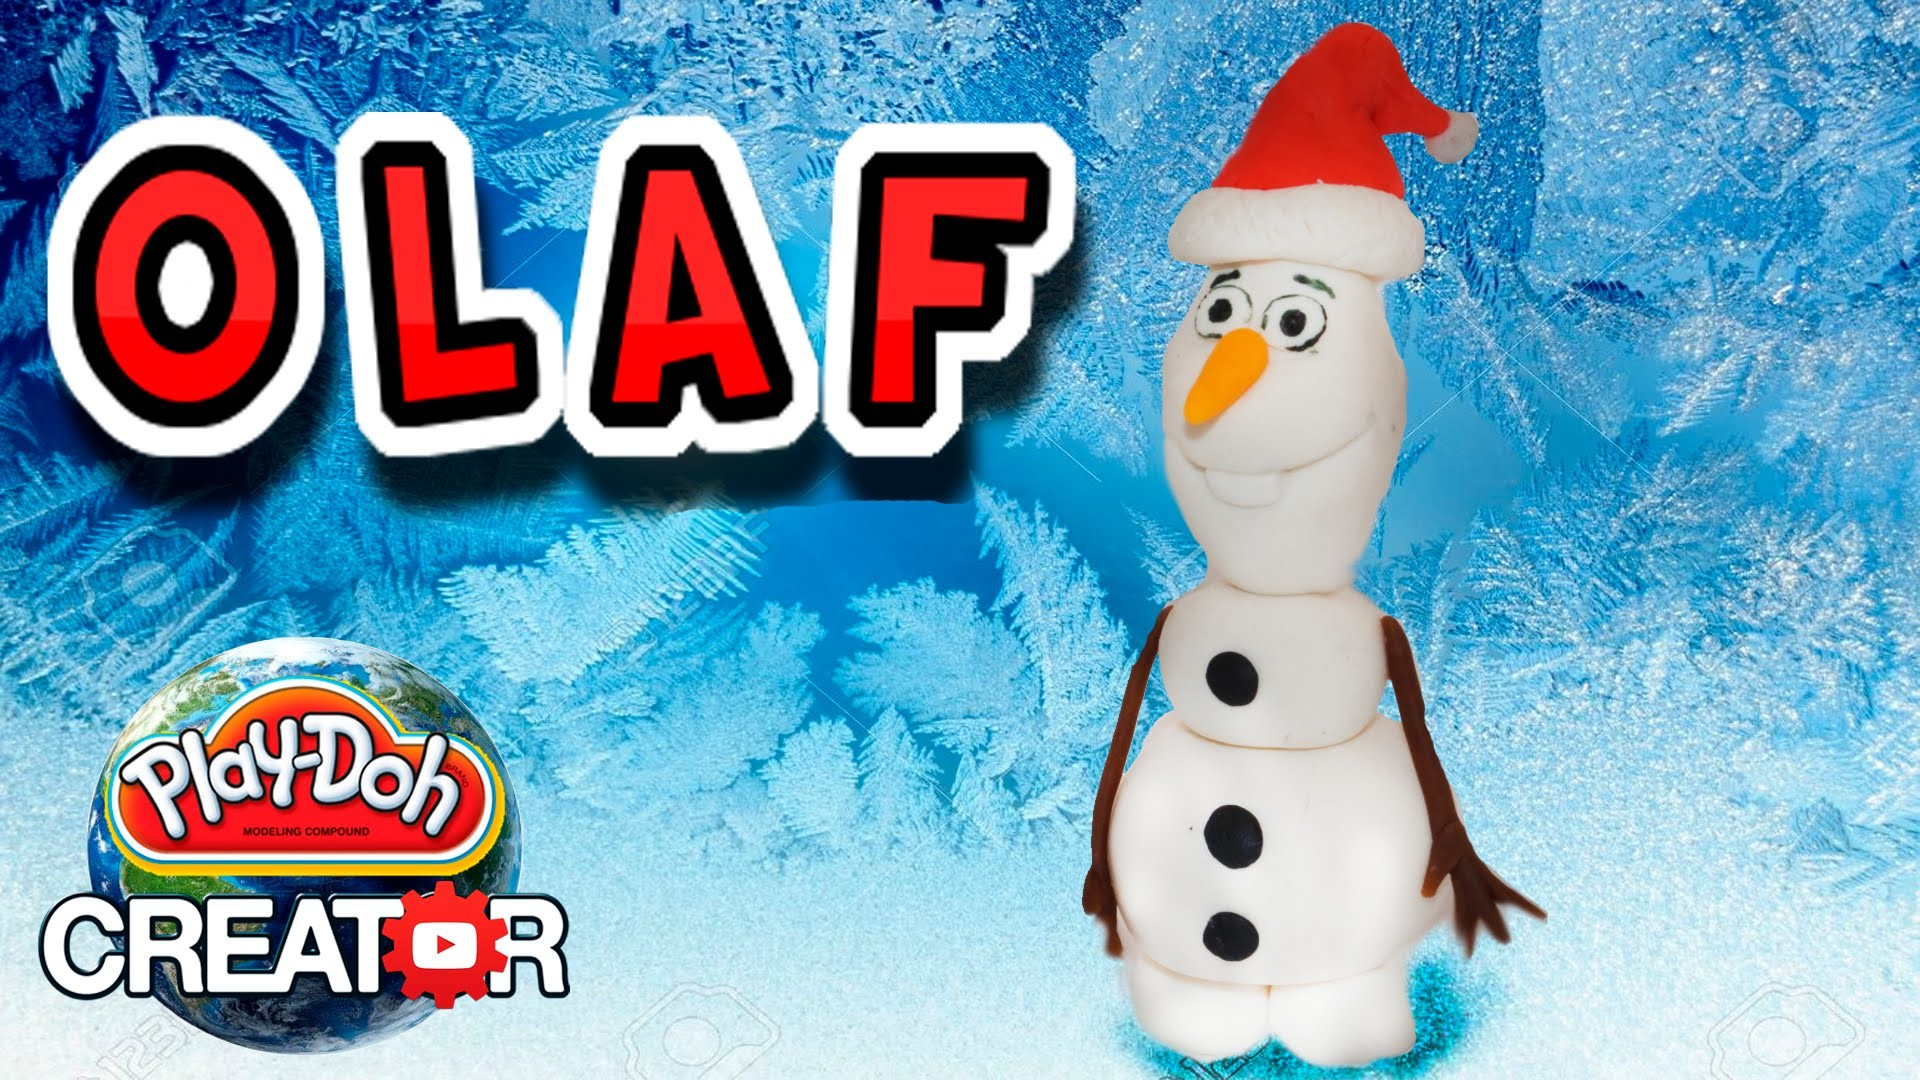 How to make Play-doh Disney Frozen Olaf - Clay Tutorial by PDC - Как сделать Олафа